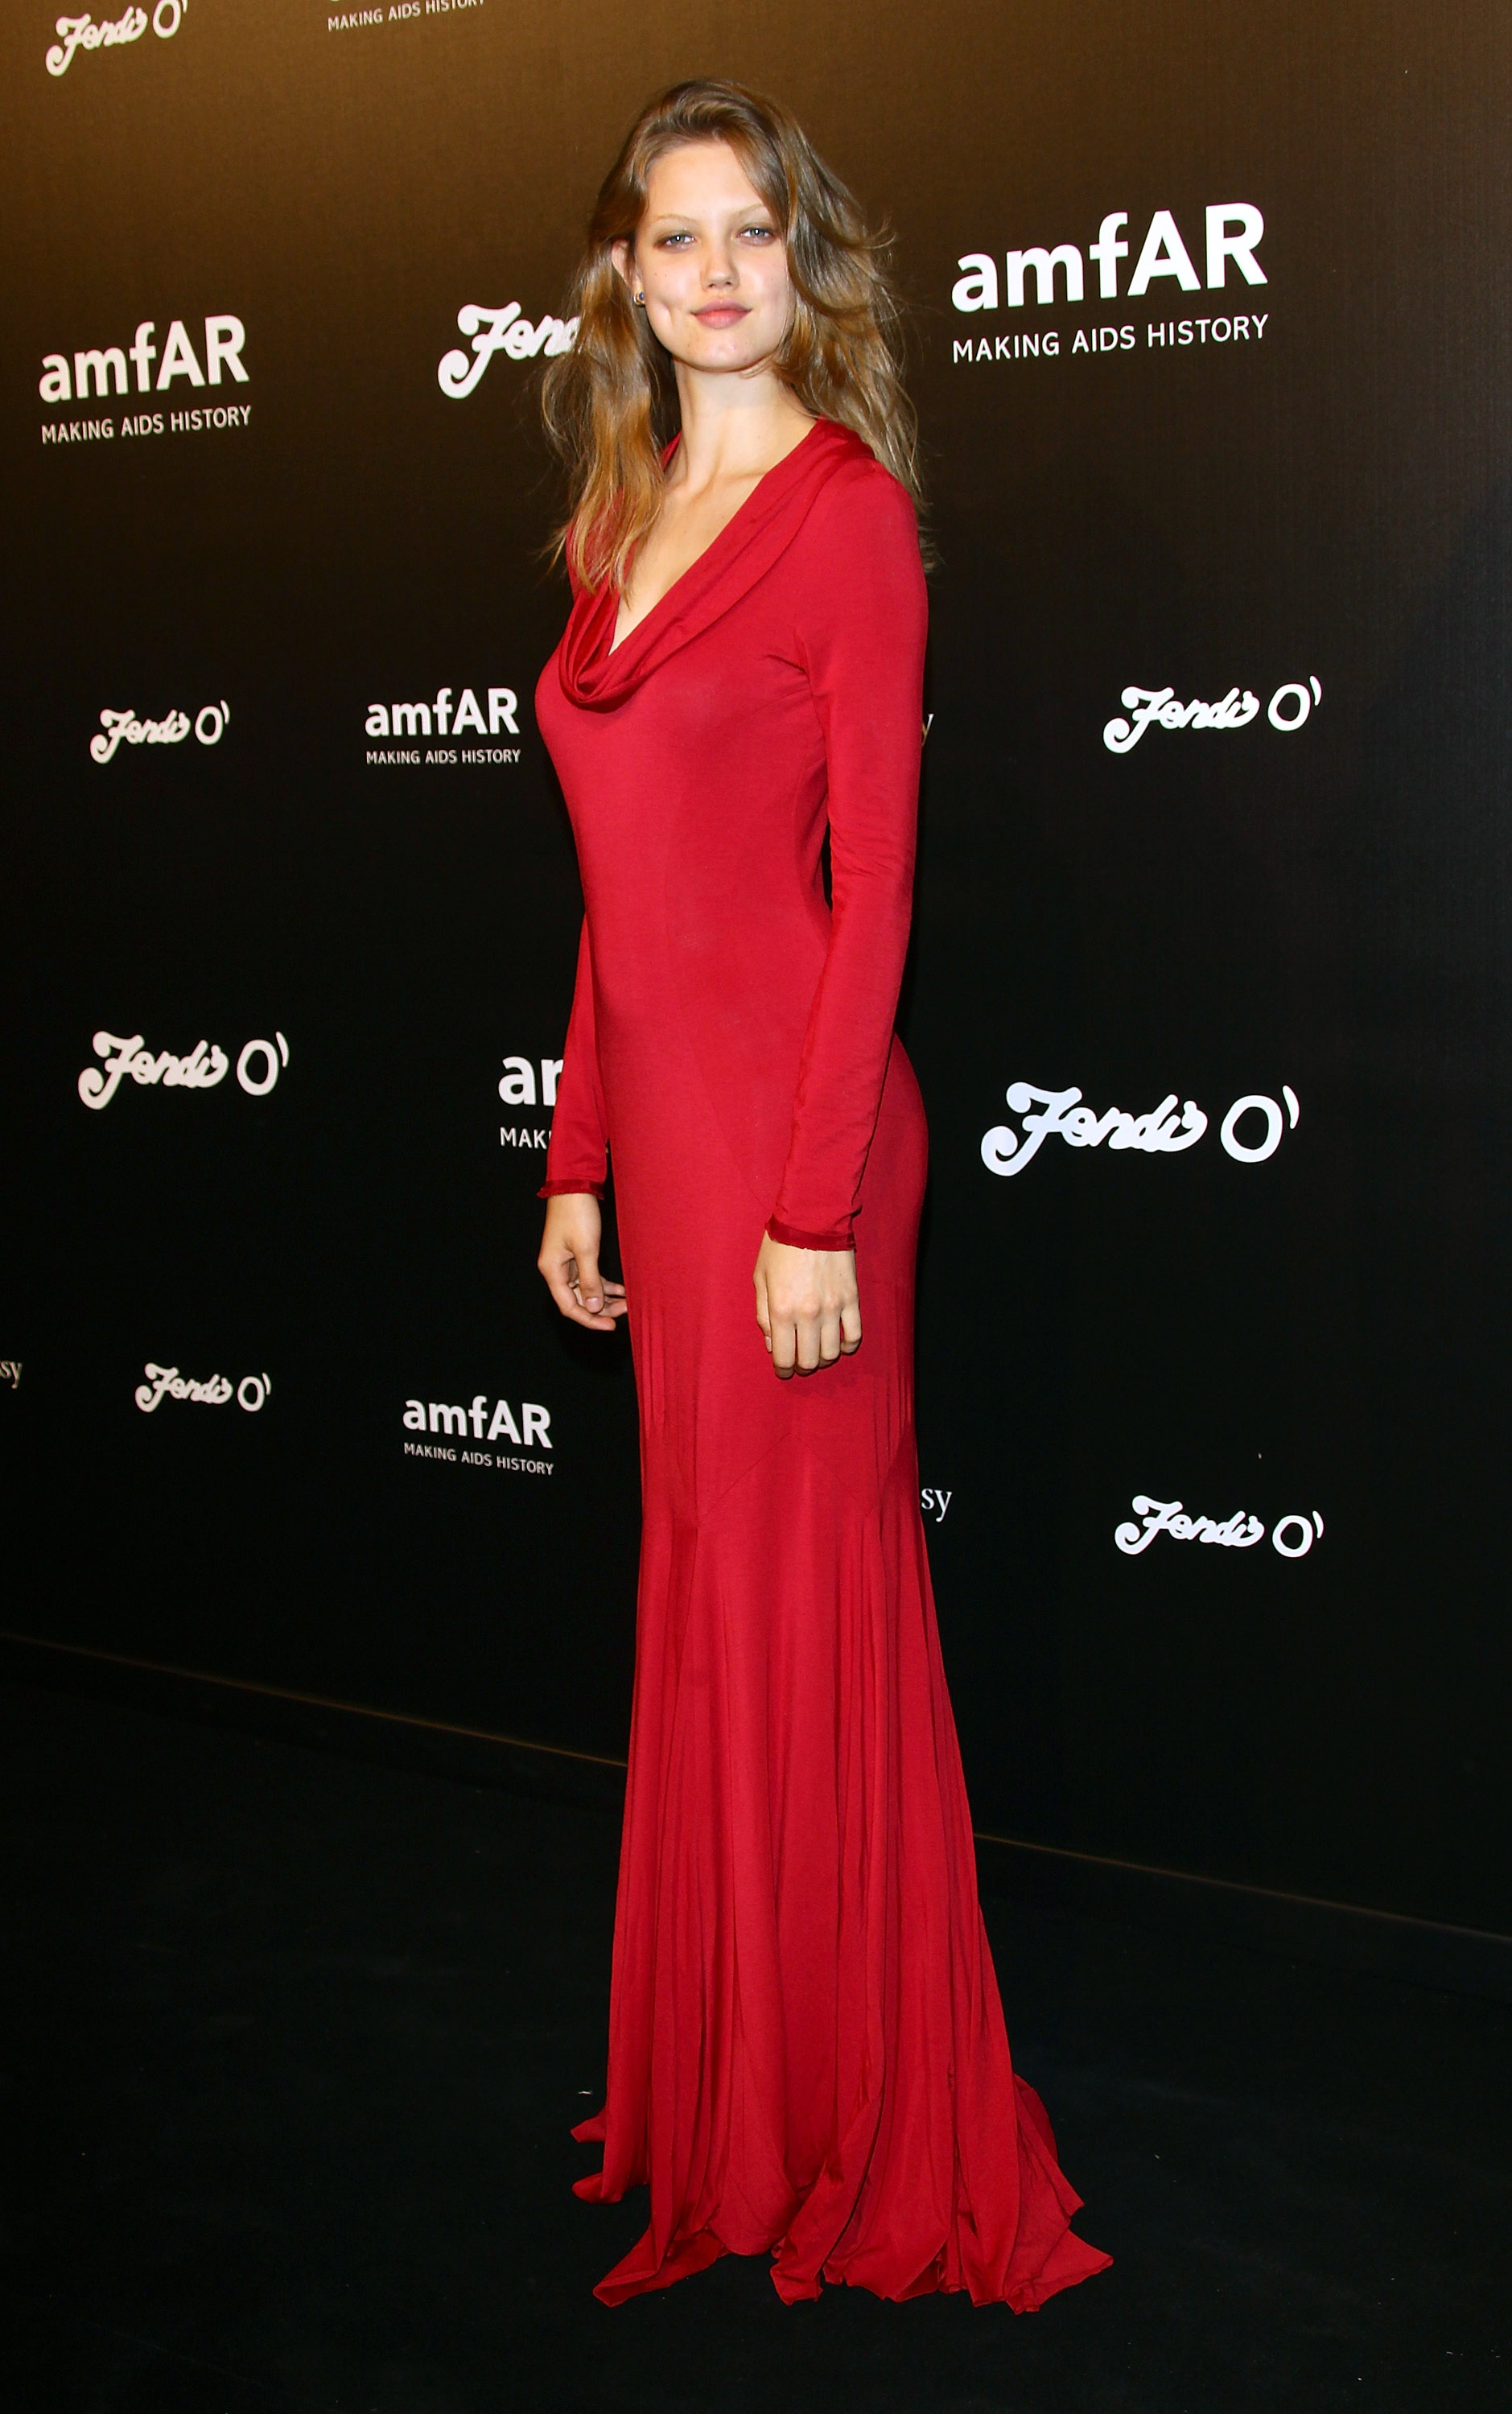 Lindsey Wixson opted for a  dramatic red gown with a draped neckline at the amfAR Milano fete.